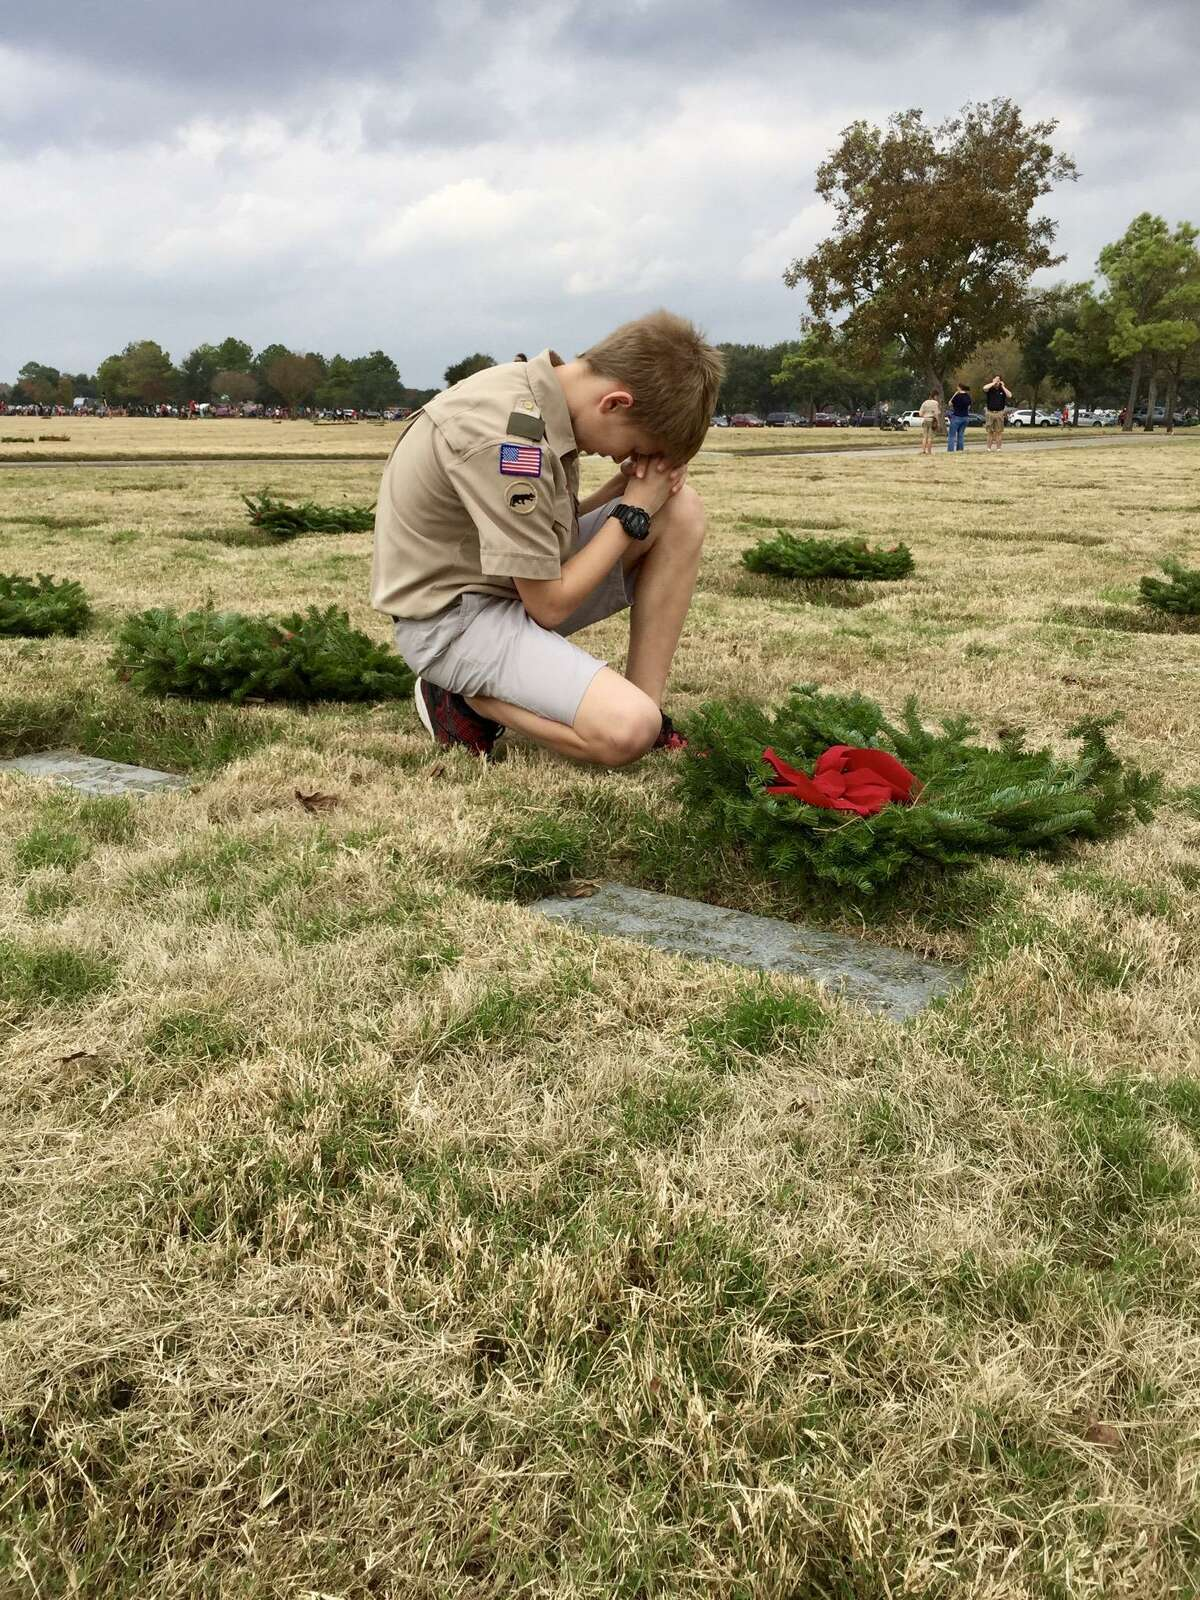 Elijah Knight, who died during a severe storm at a Boy Scouts of America camp in Georgia on June 25, 2018, is shown here in a Dec. 27, 2016 photo at a Wreaths Across America project, placing wreaths at Houston National Cemetery on Veterans Memorial Drive. The Cypress teen's parents have filed a wrongful death lawsuit against the national organization and the Atlanta Area Council of the Boy Scouts of America.